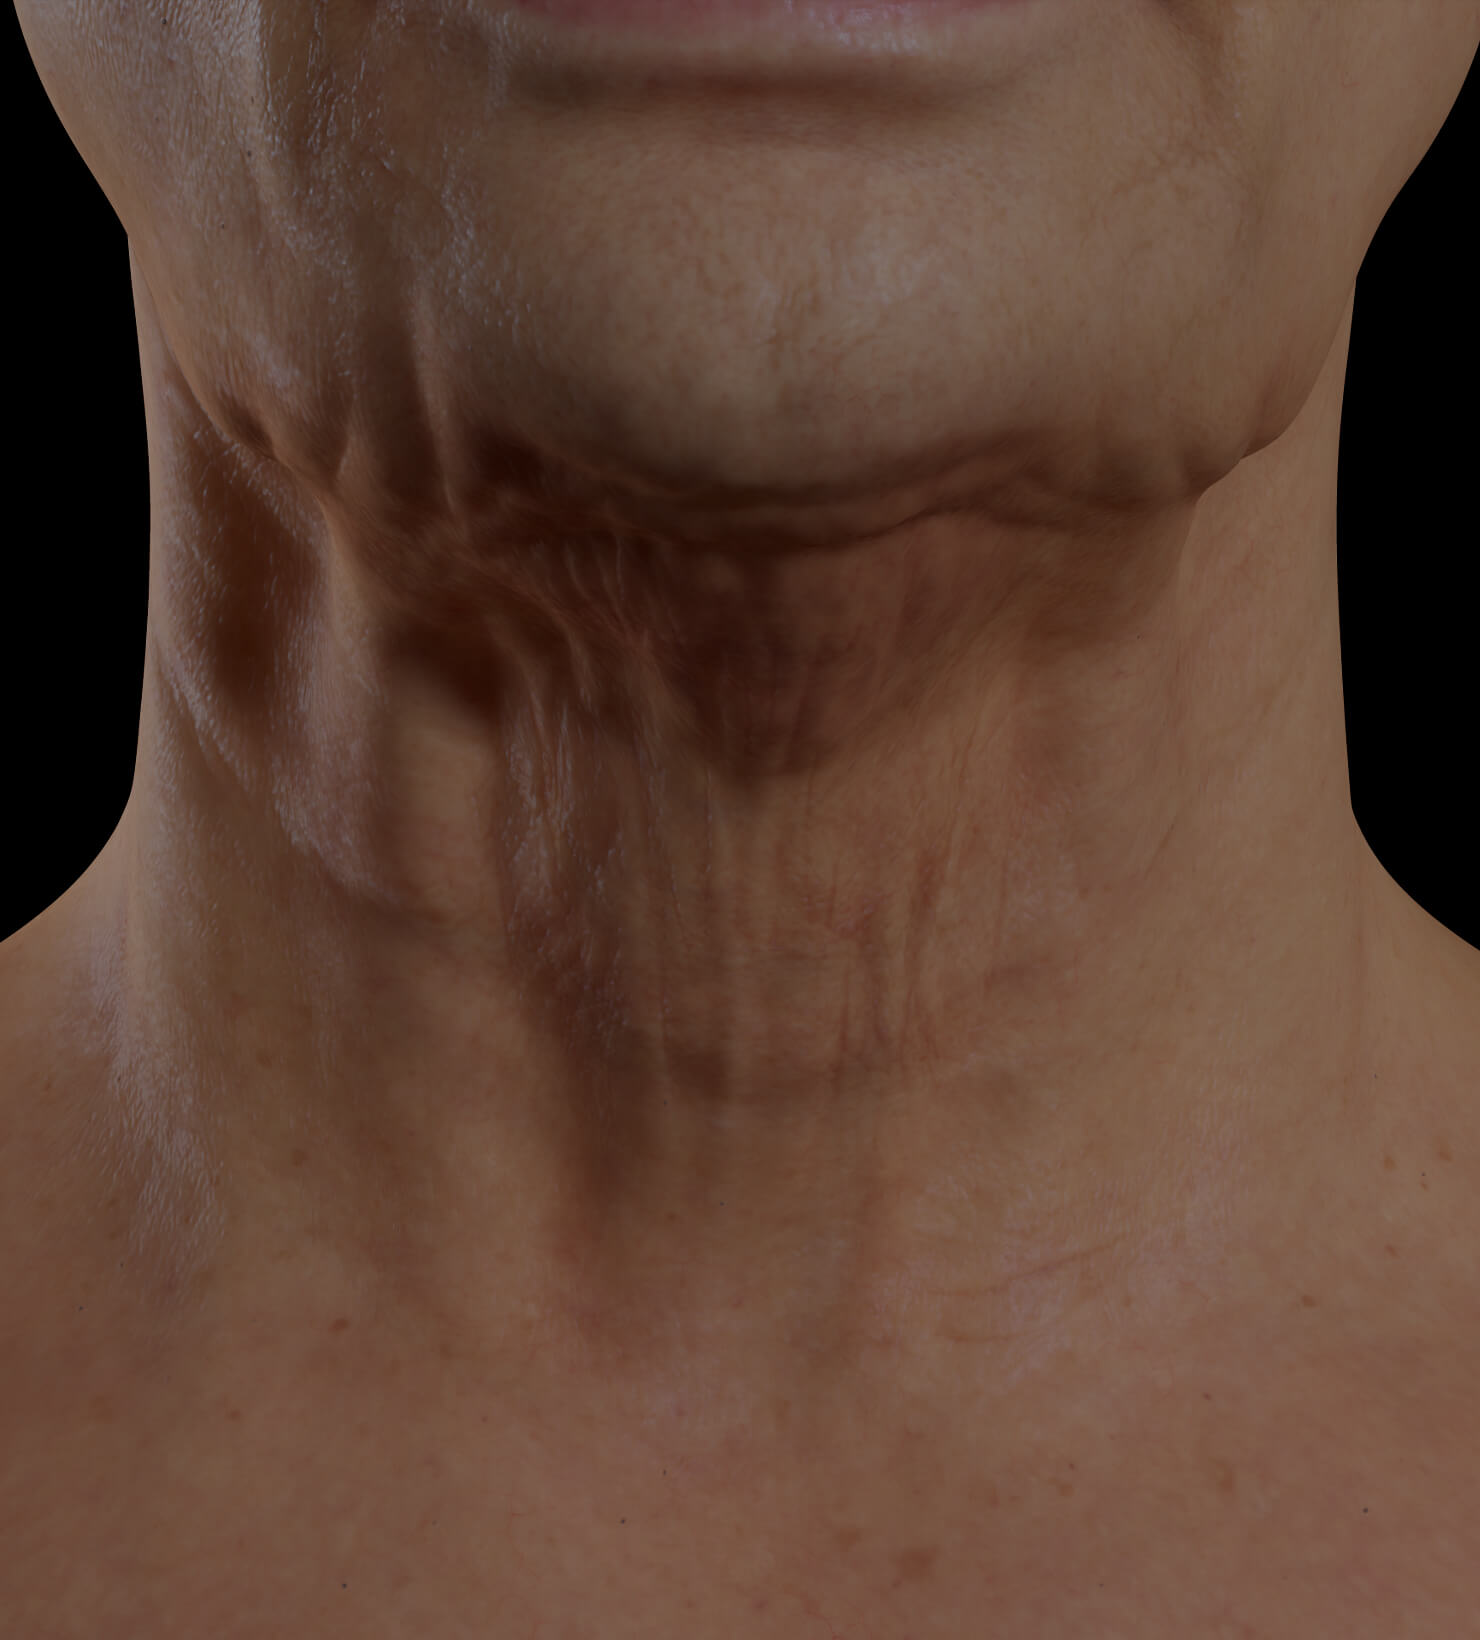 Clinique Chloé female patient with neck skin laxity treated with Venus Legacy for neck skin tightening